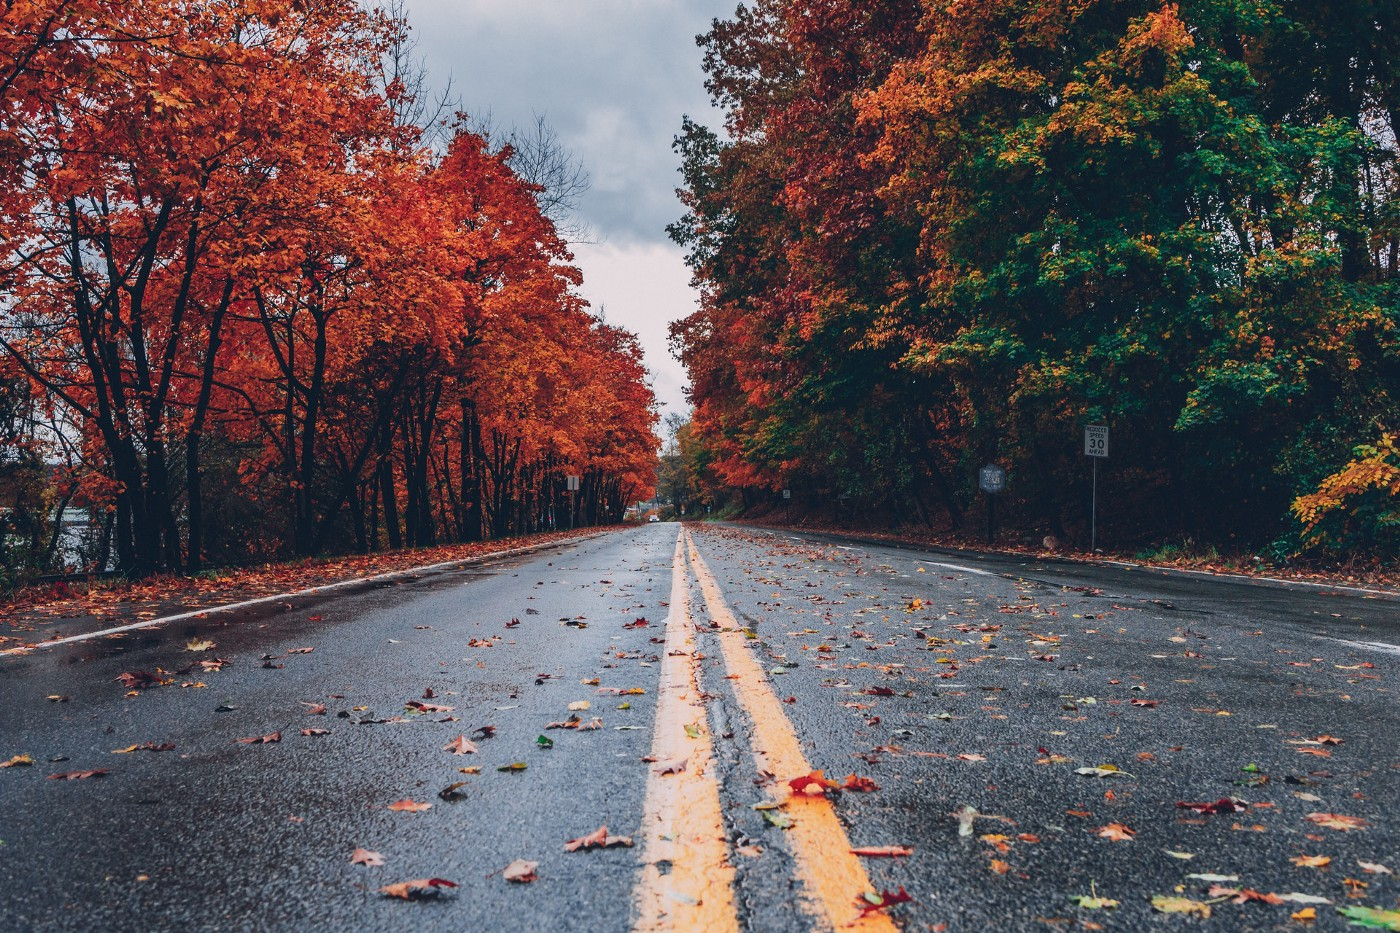 Concrete road between trees with fall leaves scattered.